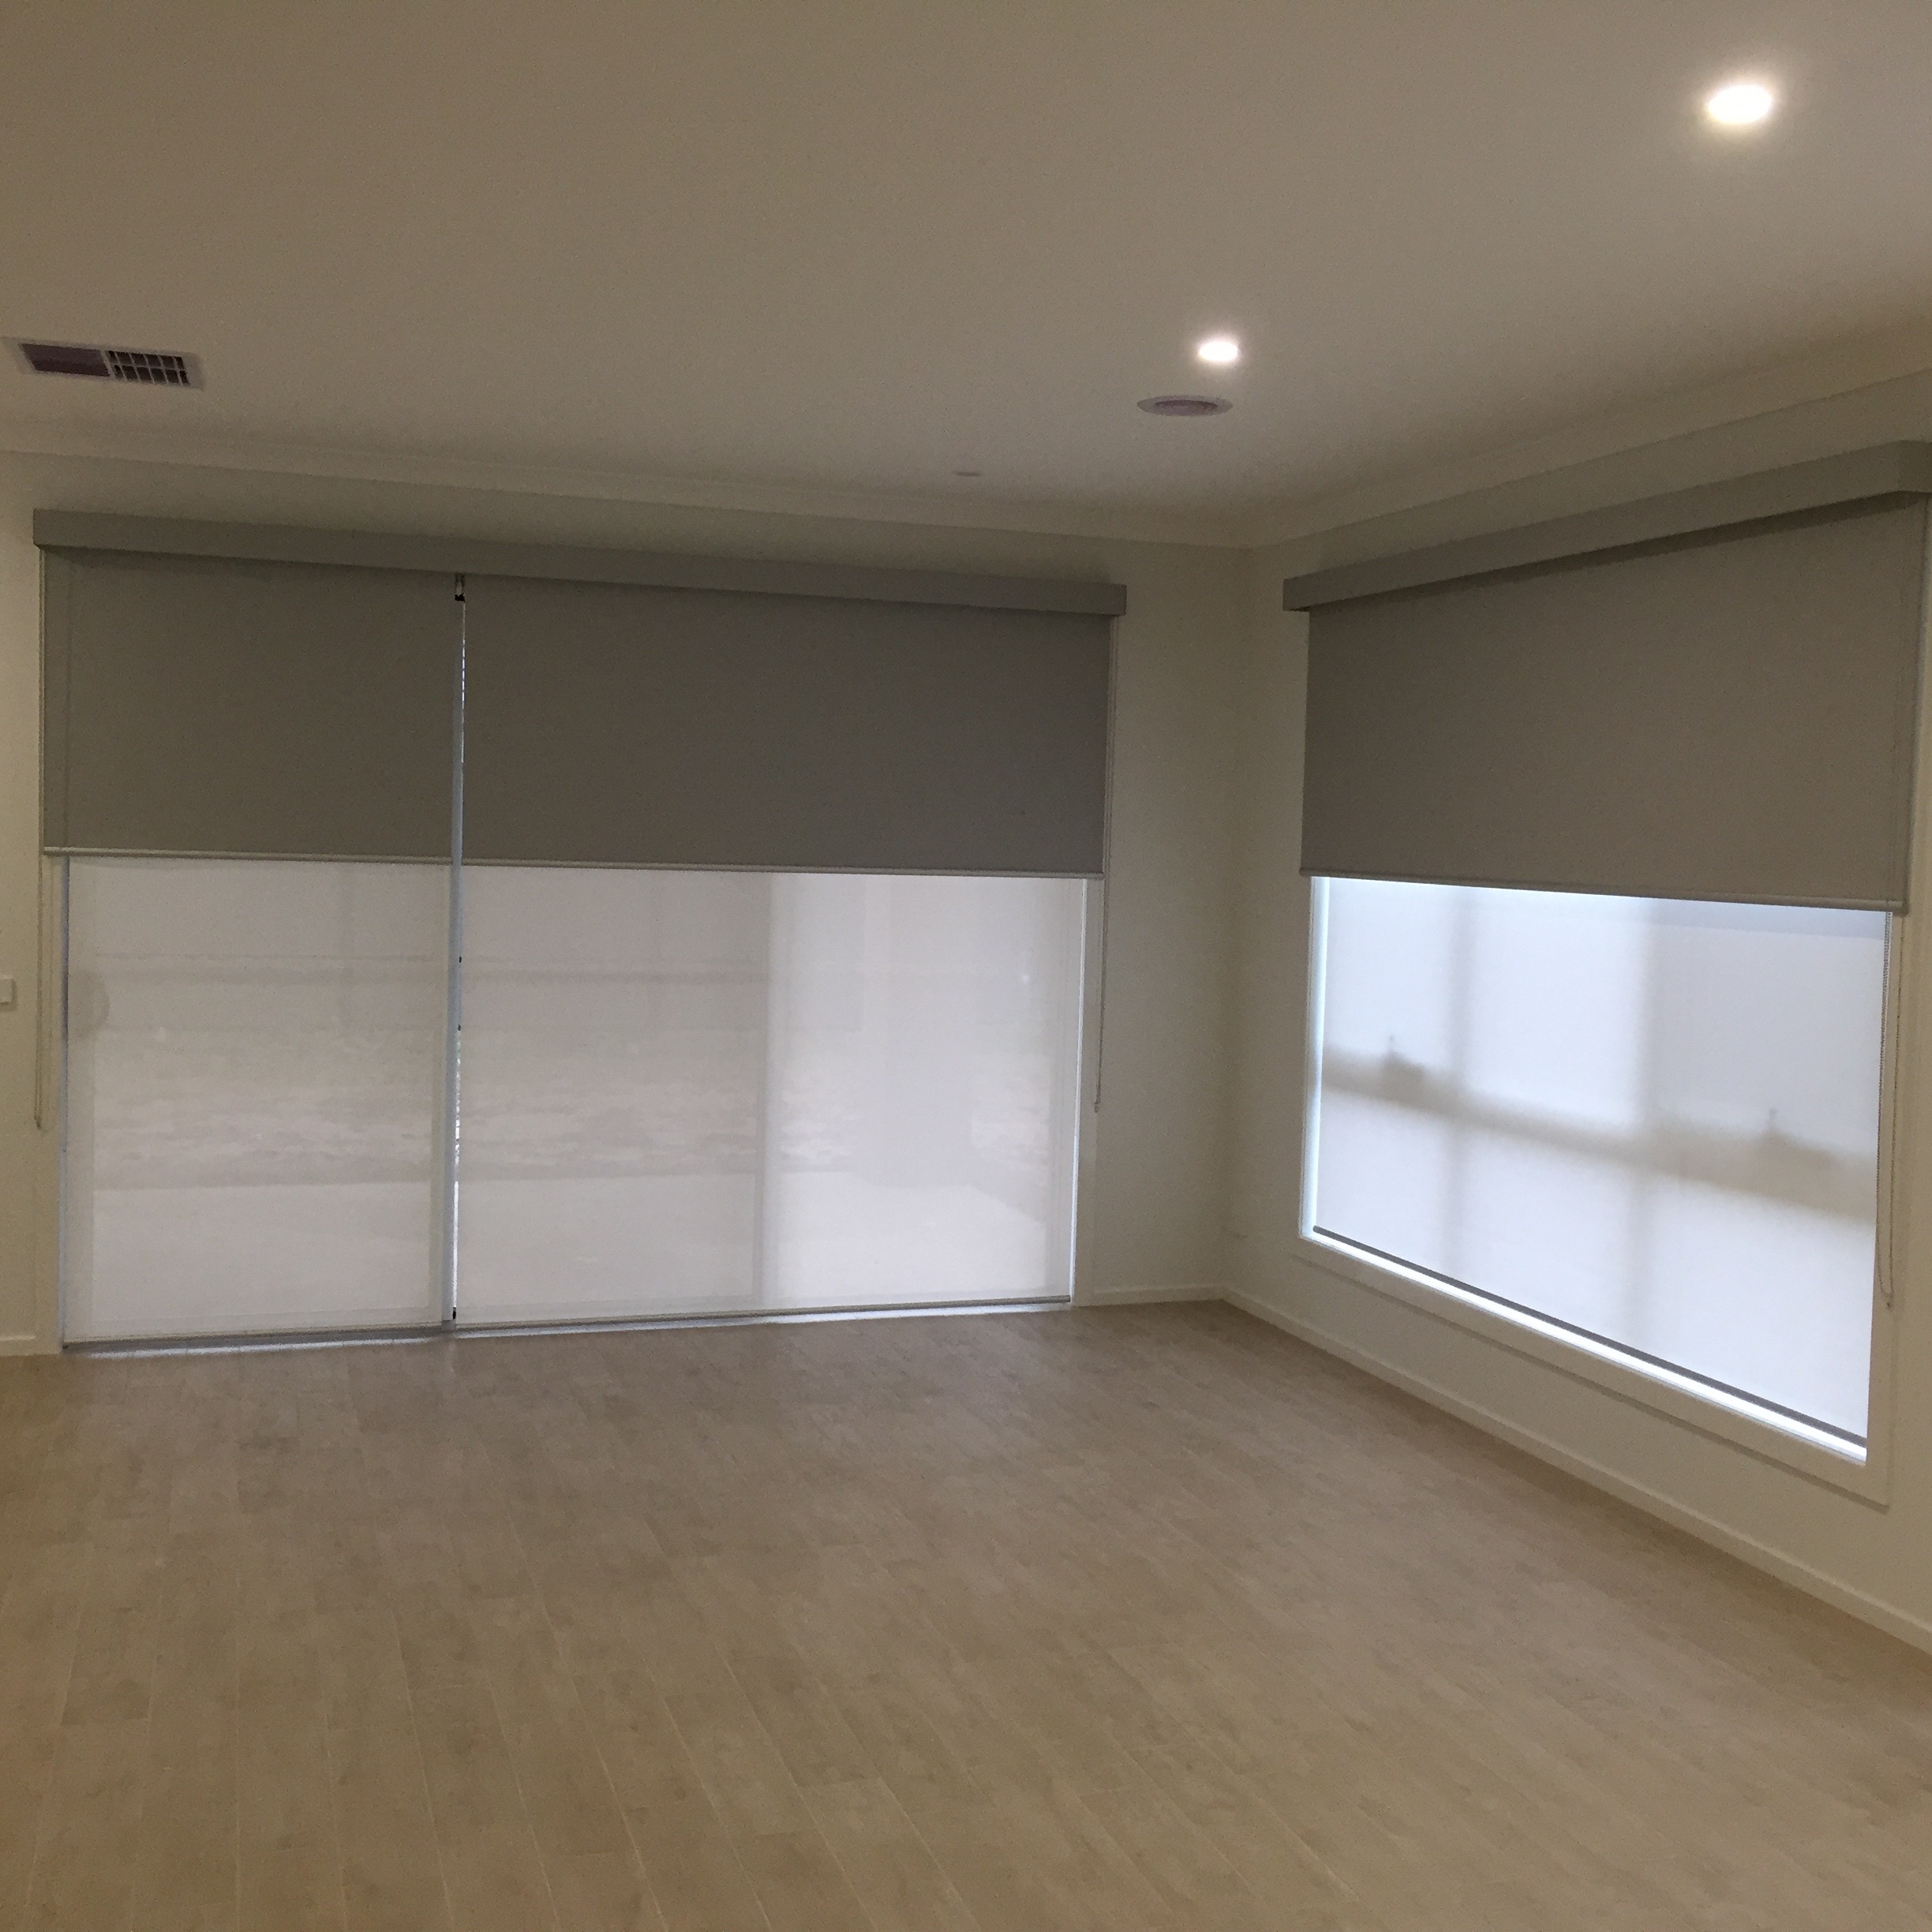 Cheap Roller Blinds Melbourne Melbourne Made Roller Blinds Buy Direct From The Manufacturer